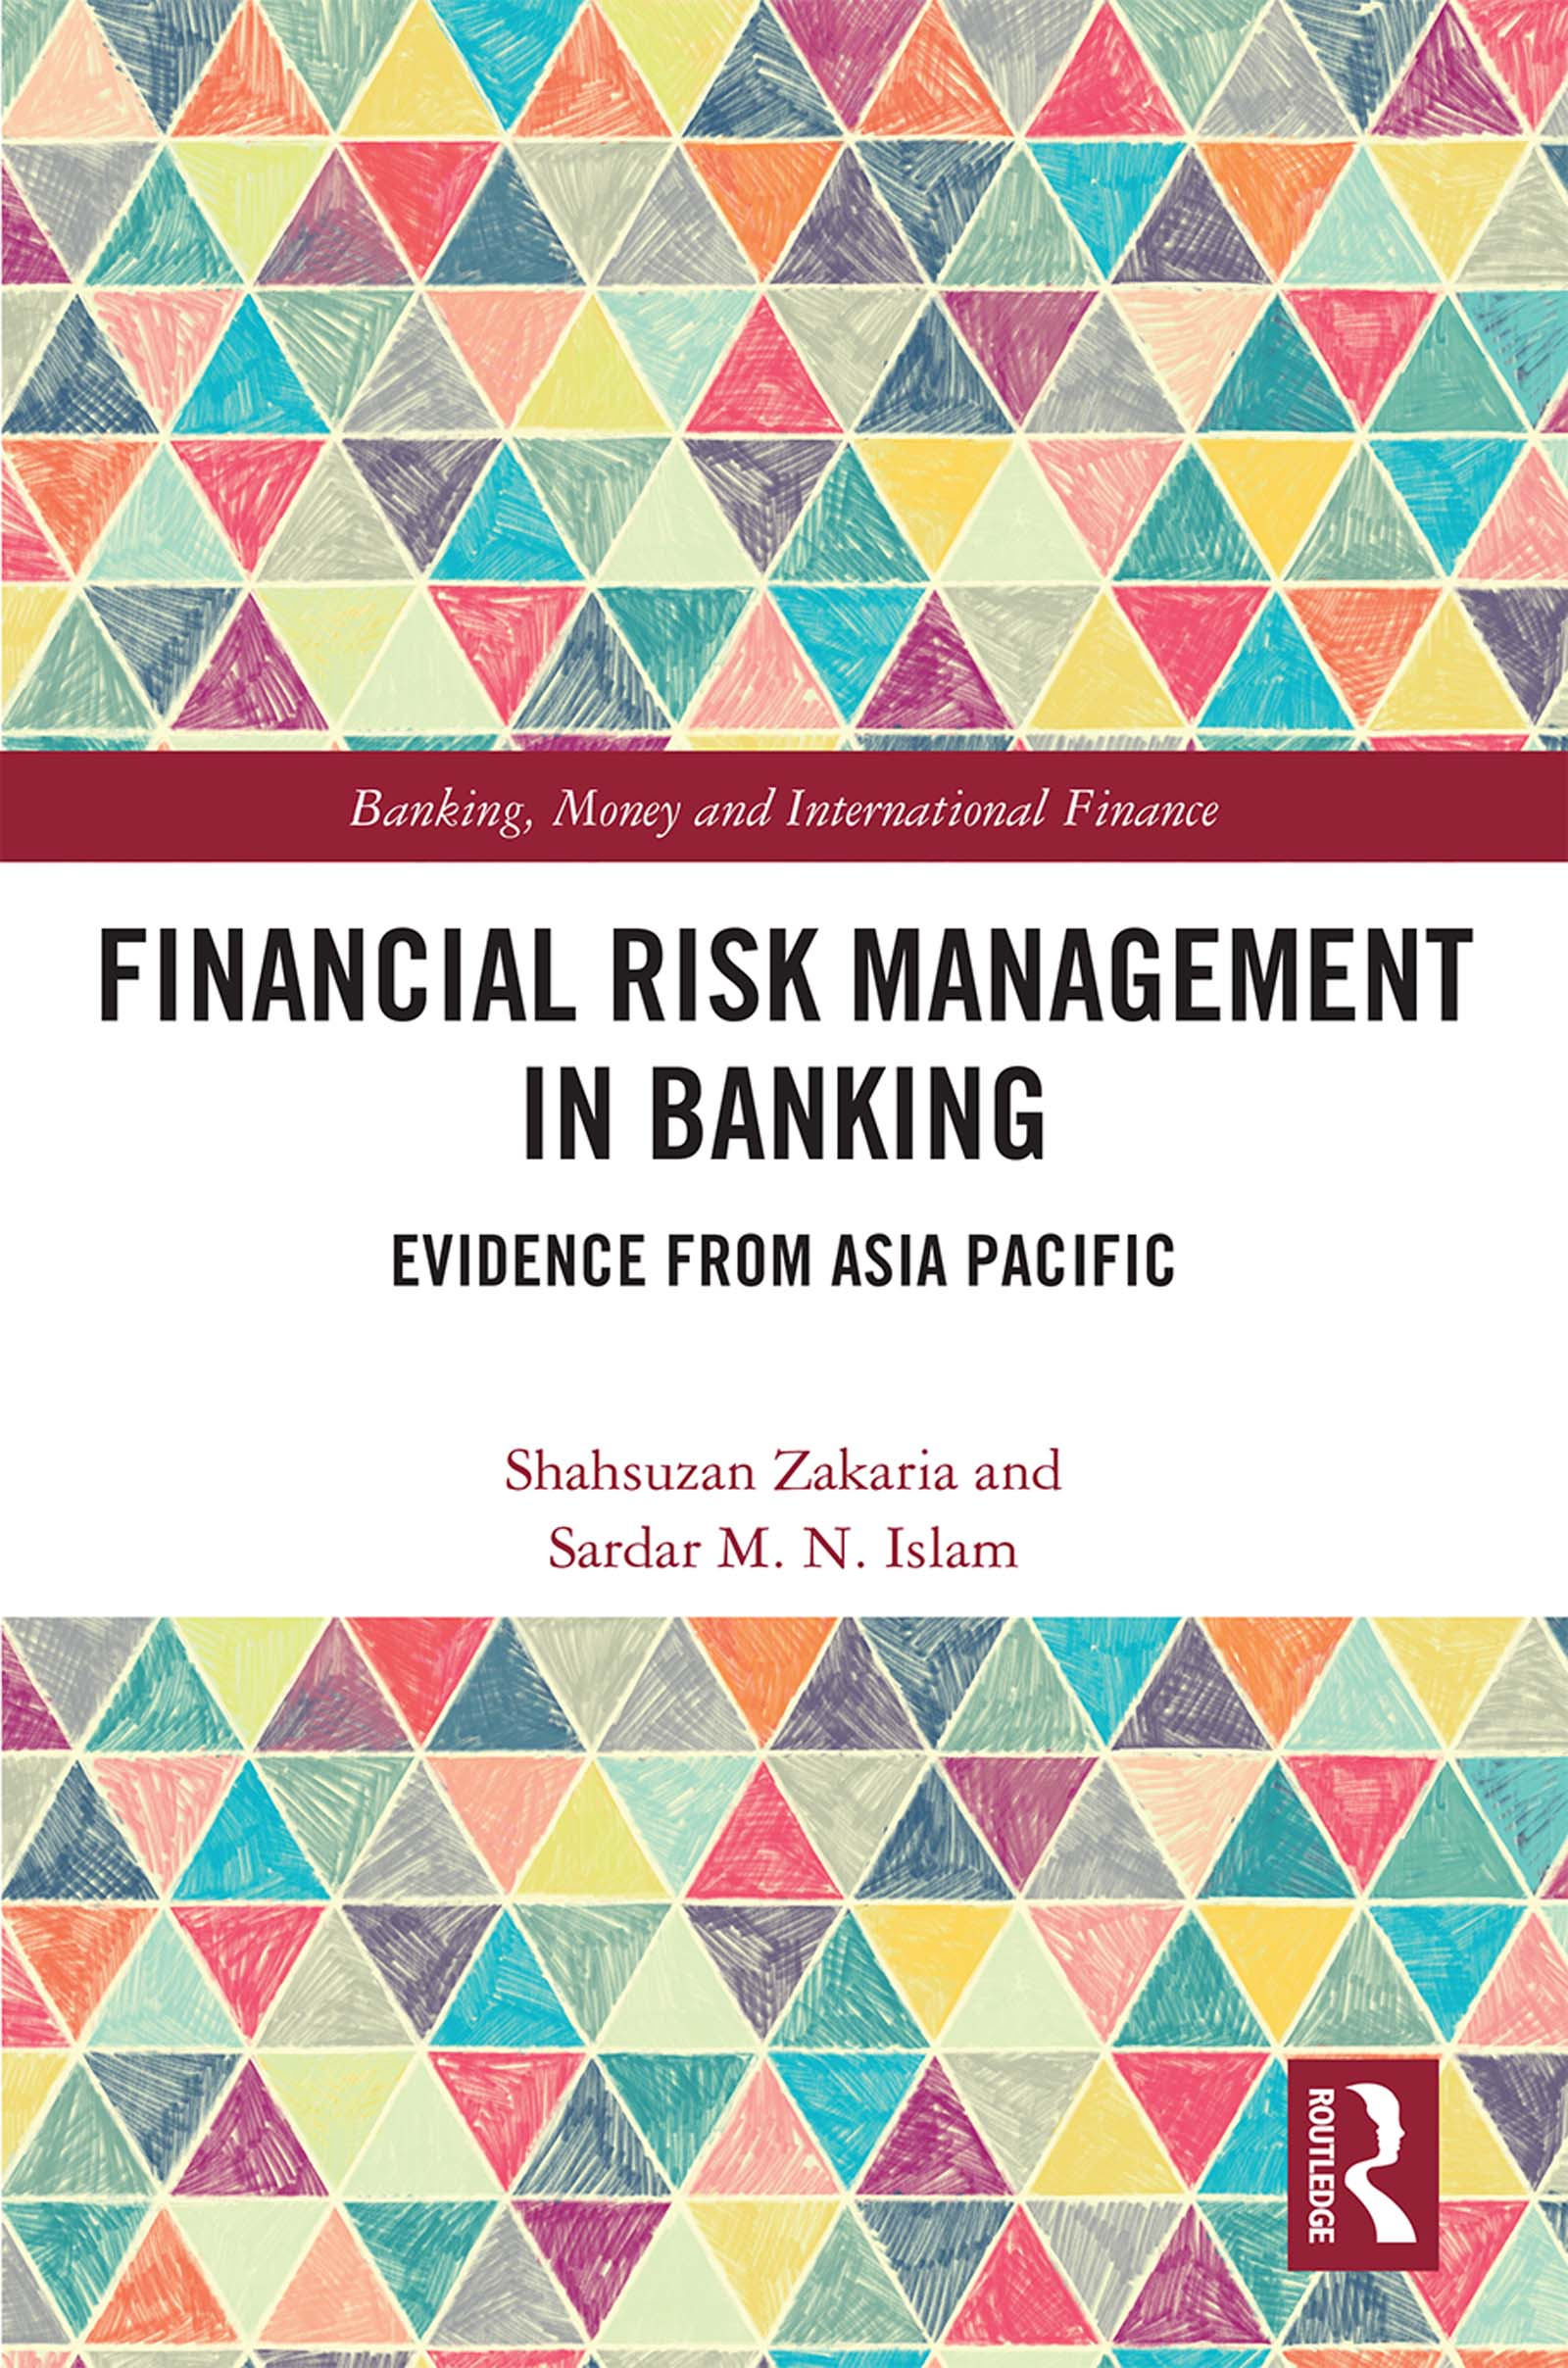 Financial Risk Management in Banking: Evidence from Asia Pacific book cover